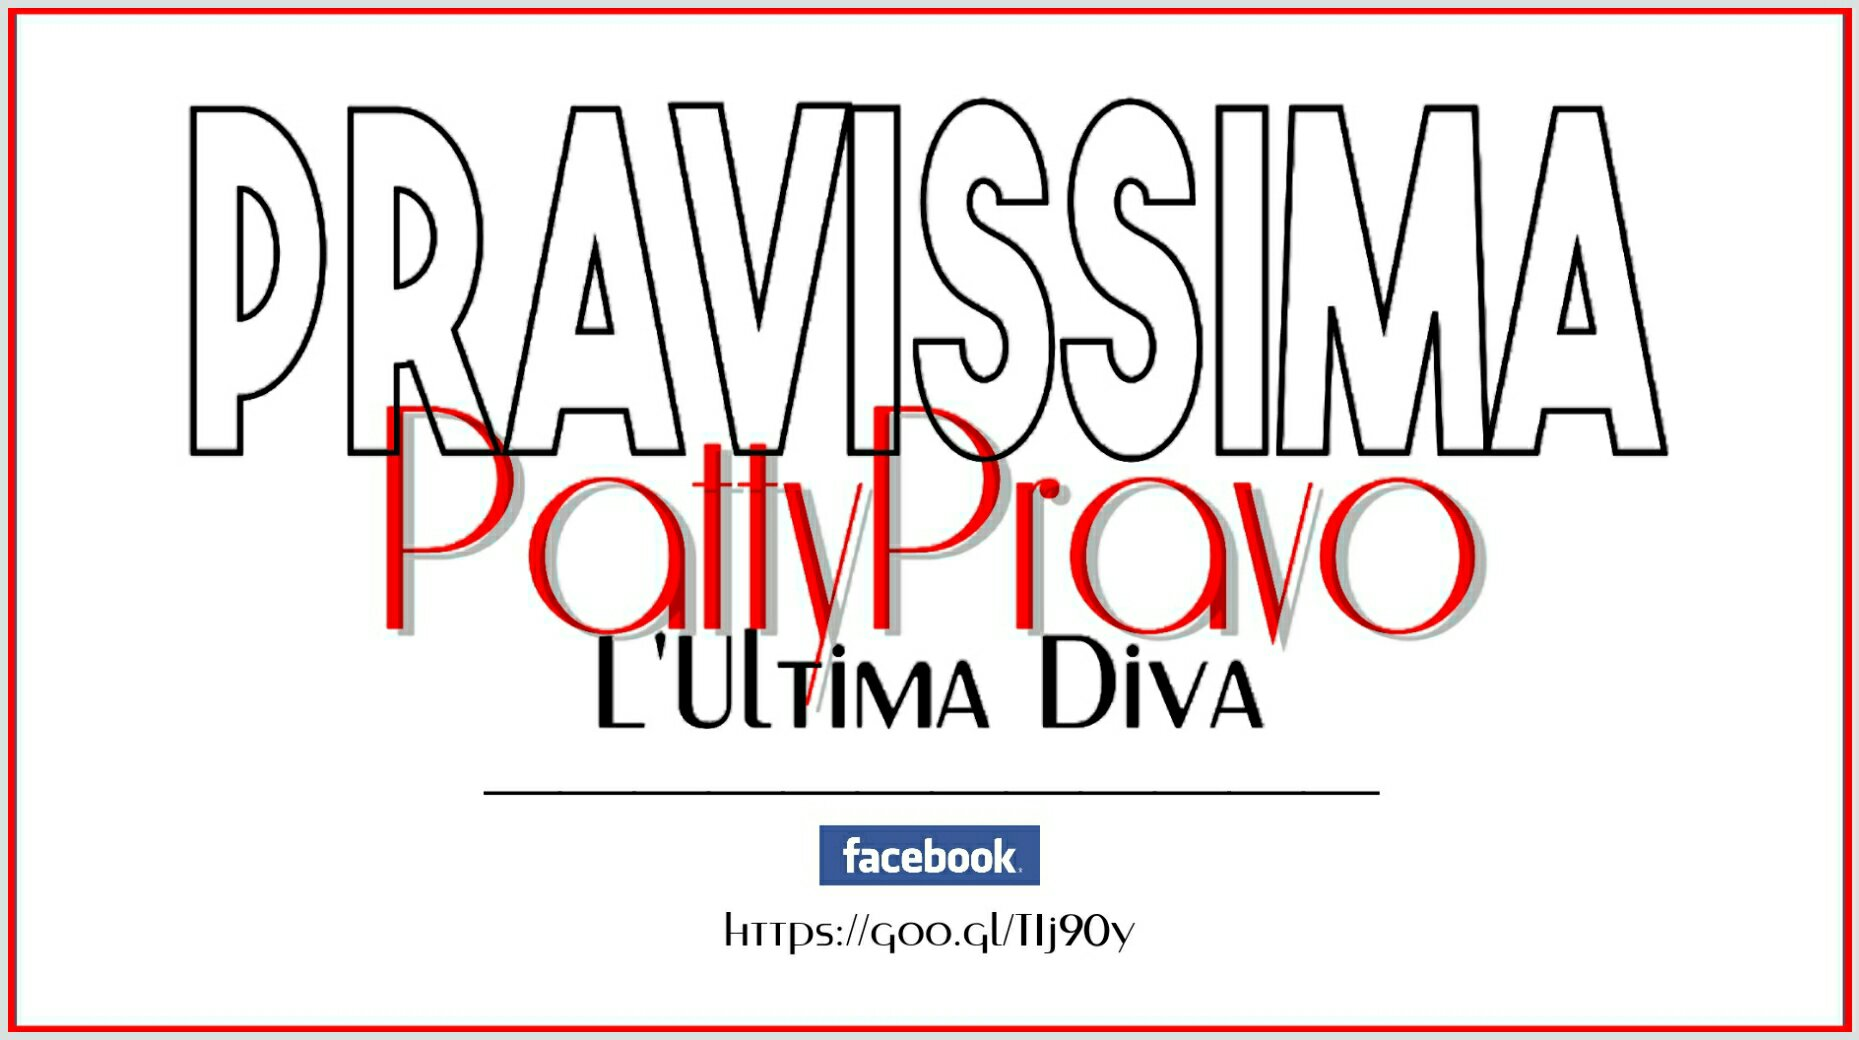 PRAVISSIMA – Patty Pravo – L'Ultima Diva – Facebook